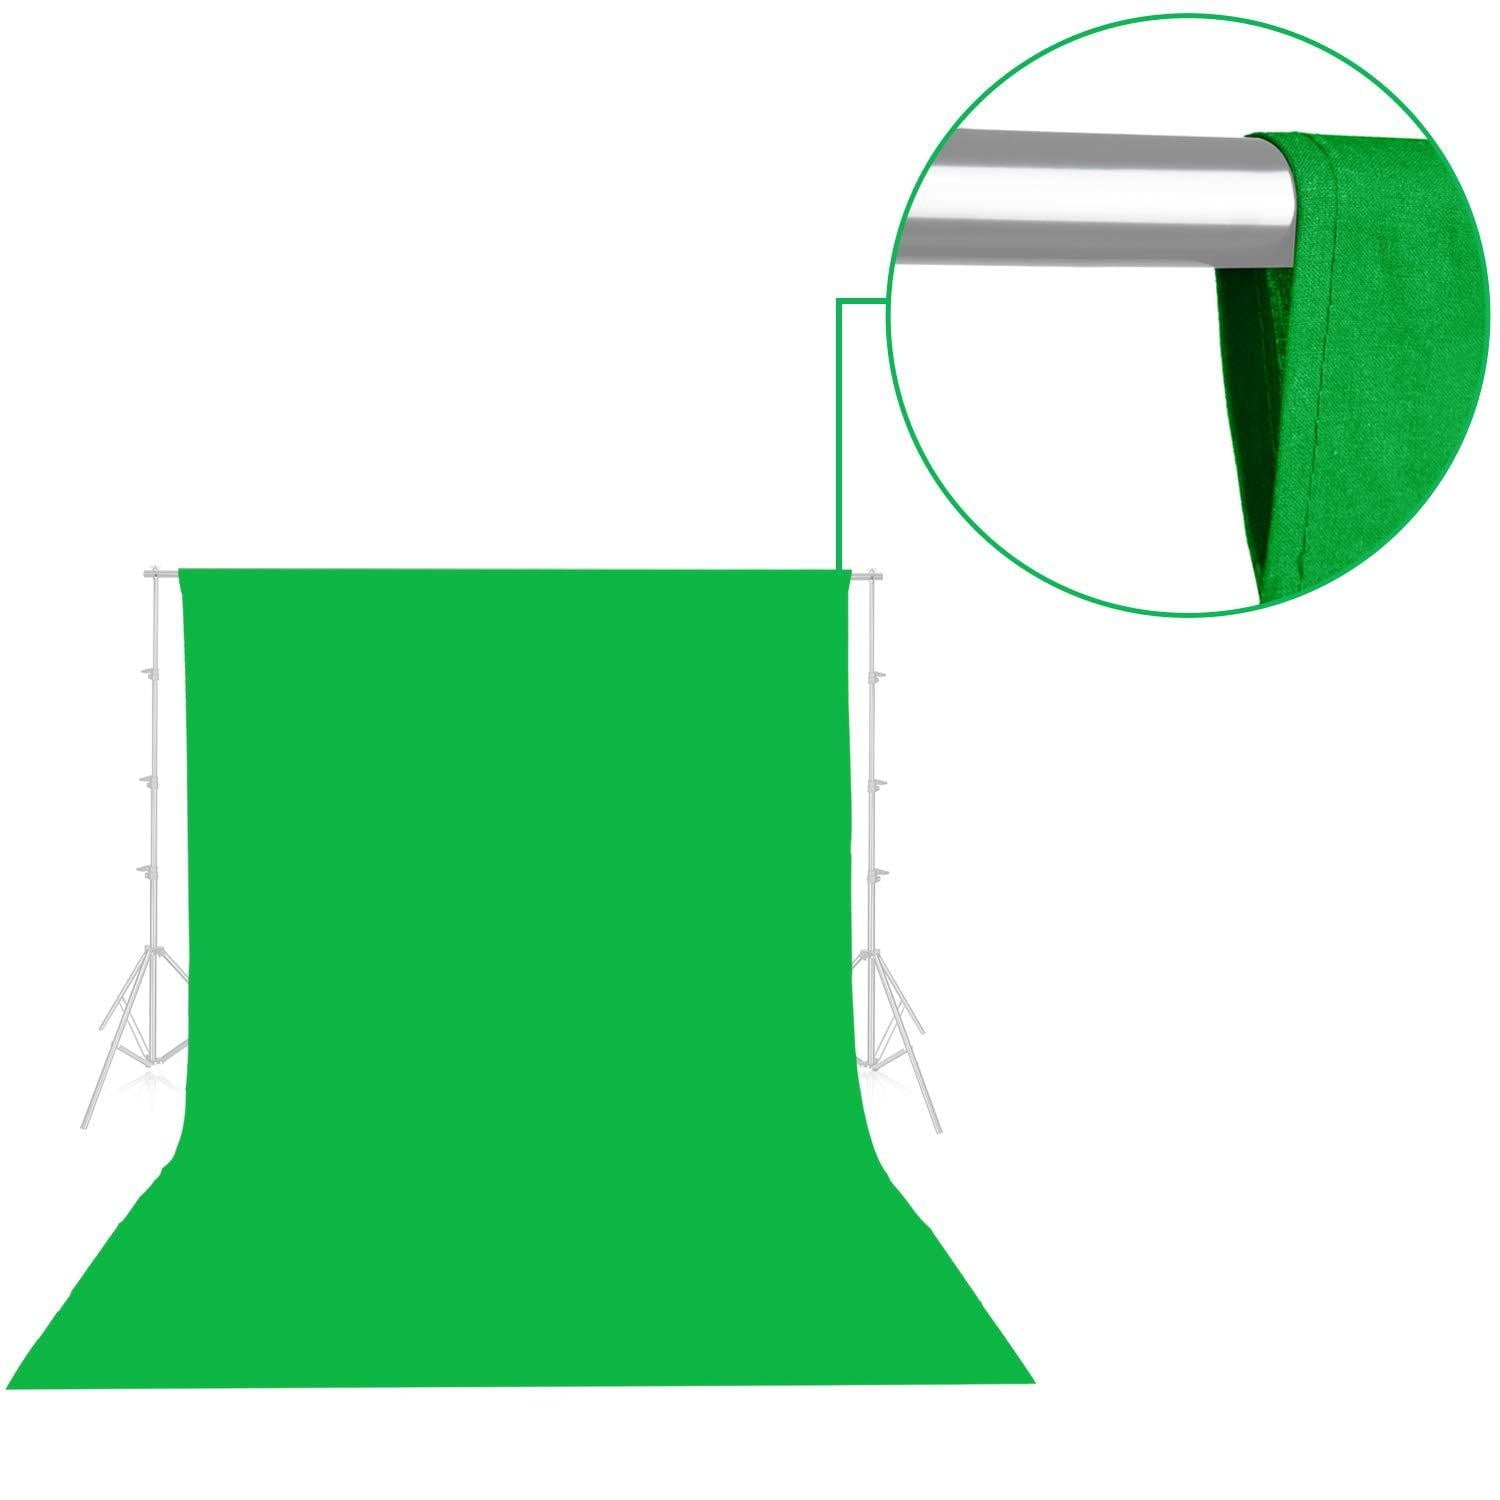 Emart Green Backdrop Background Screen 10 x 15ft - EMART8